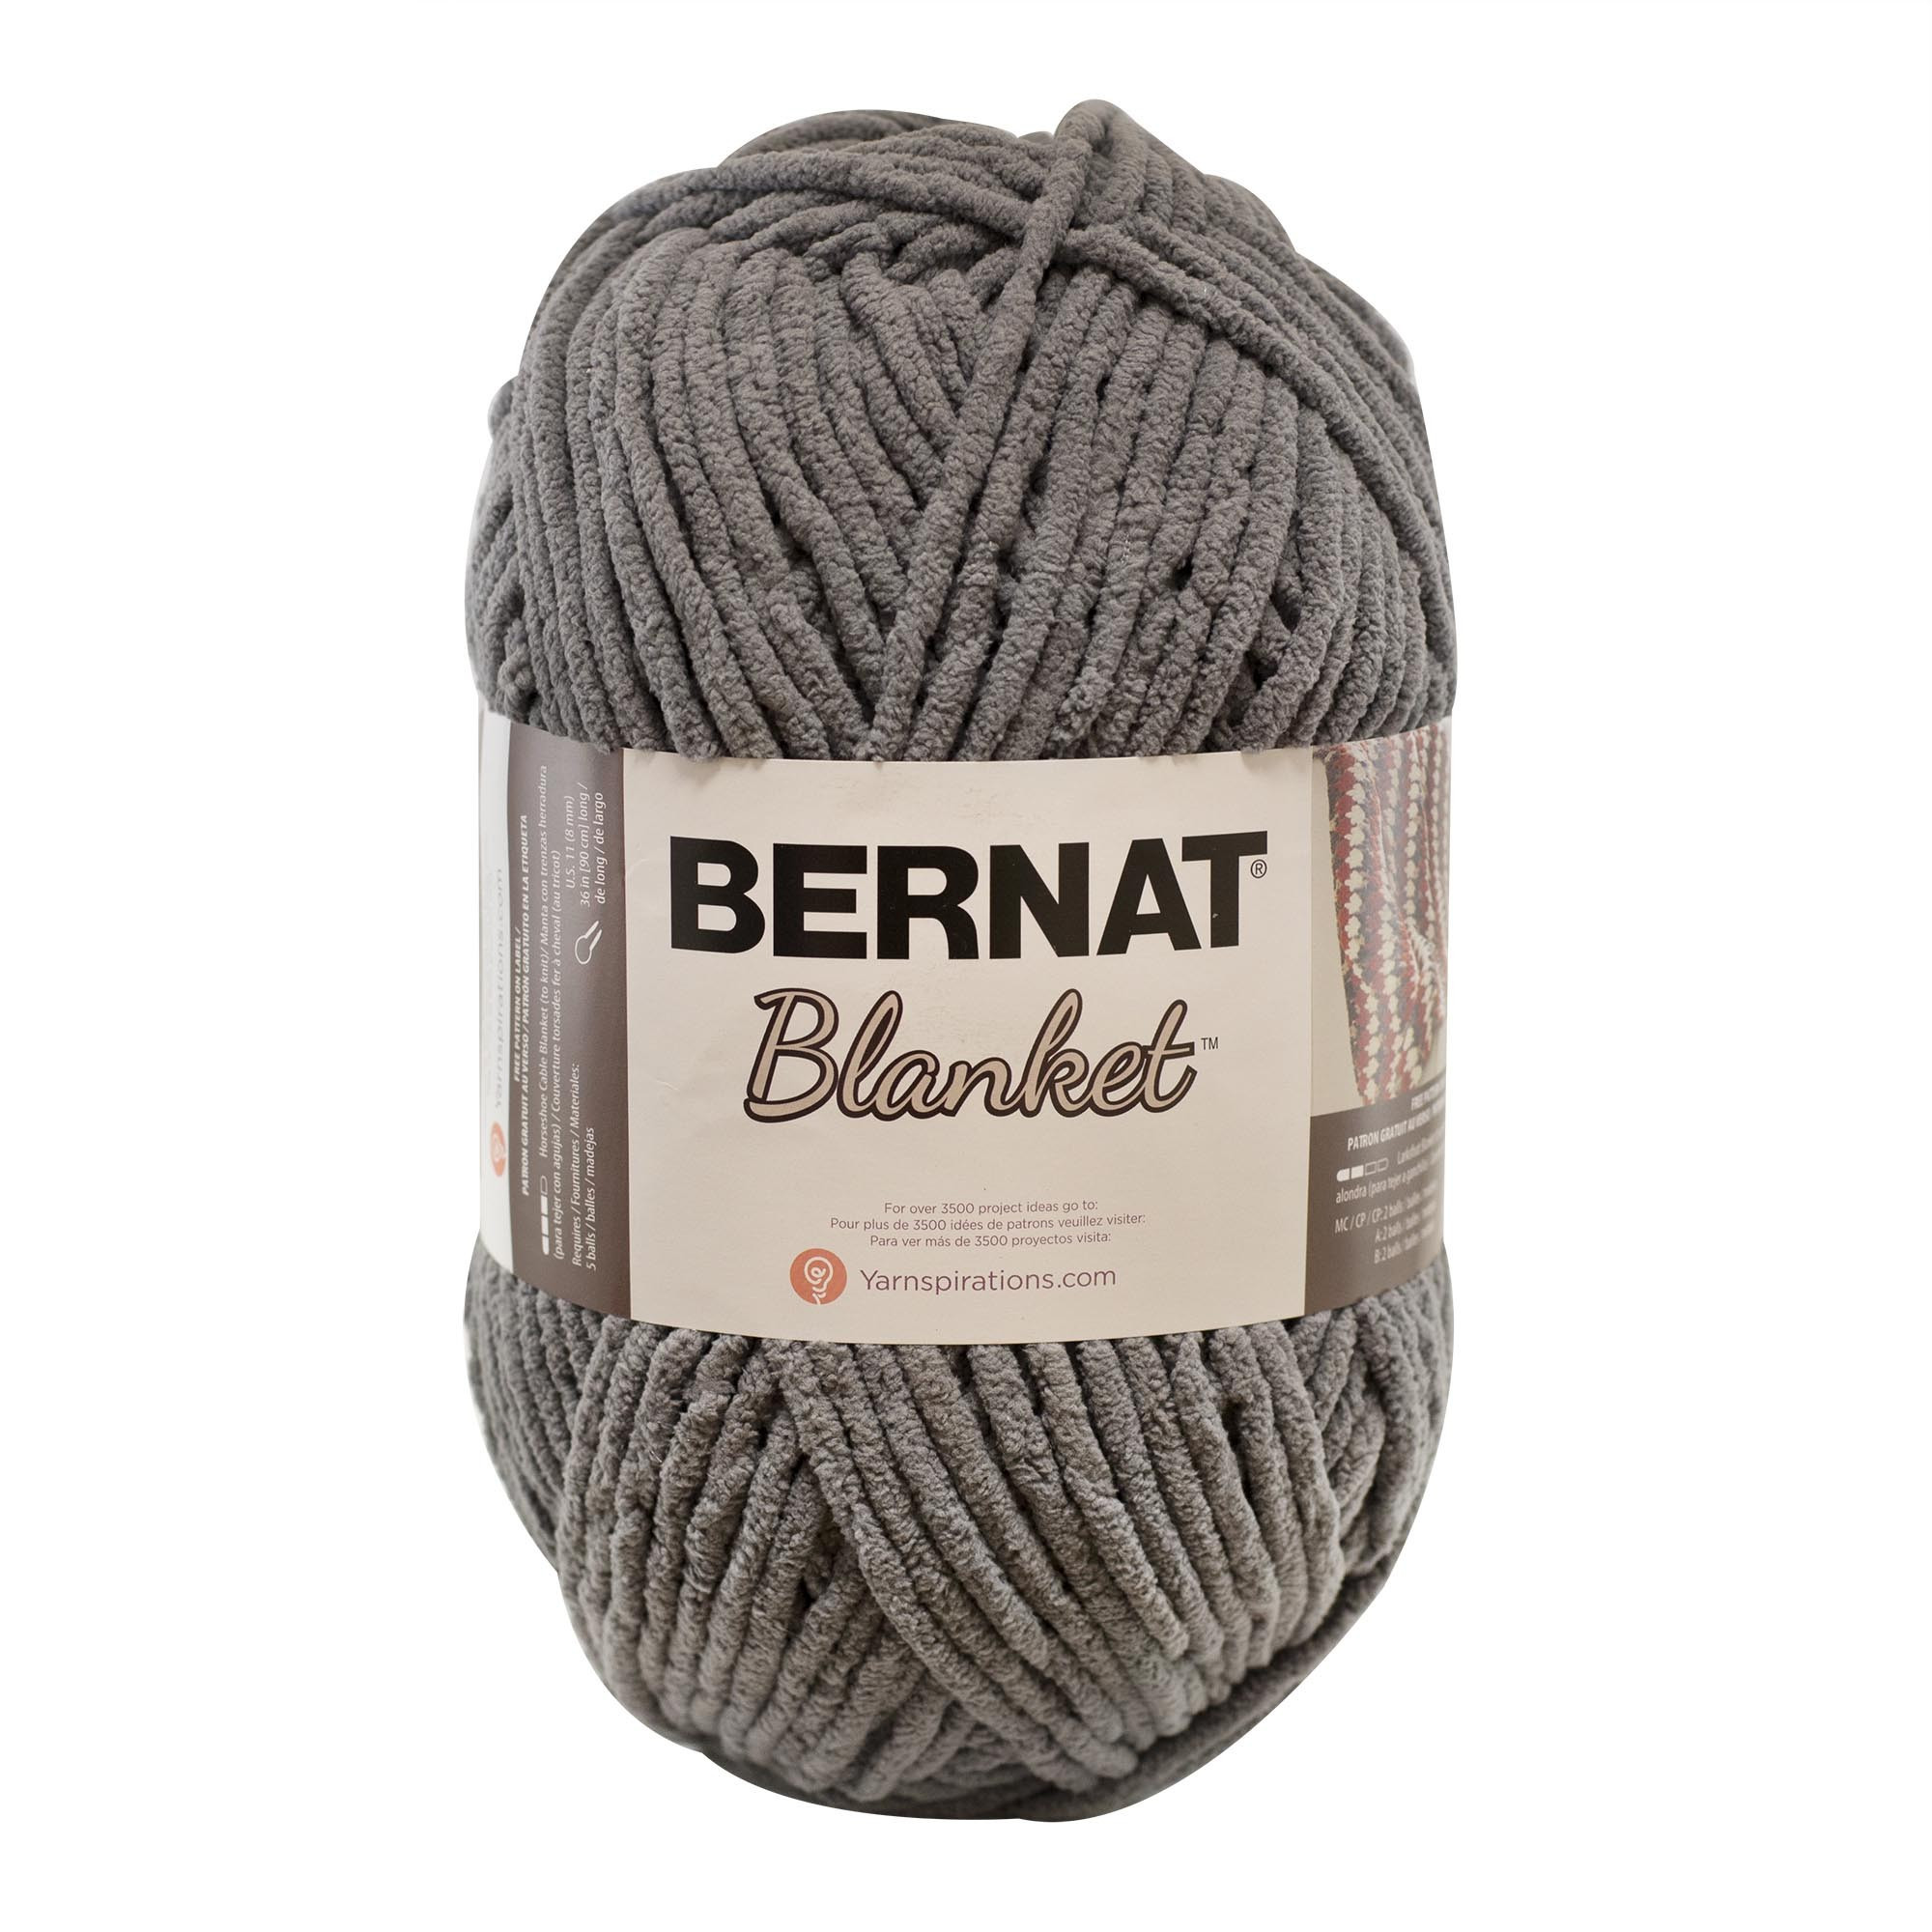 Bernat Chunky Yarn Big Ball New Bernat Blanket Big Ball Super Chunky Yarn Knitting Yarn Of Top 43 Pictures Bernat Chunky Yarn Big Ball